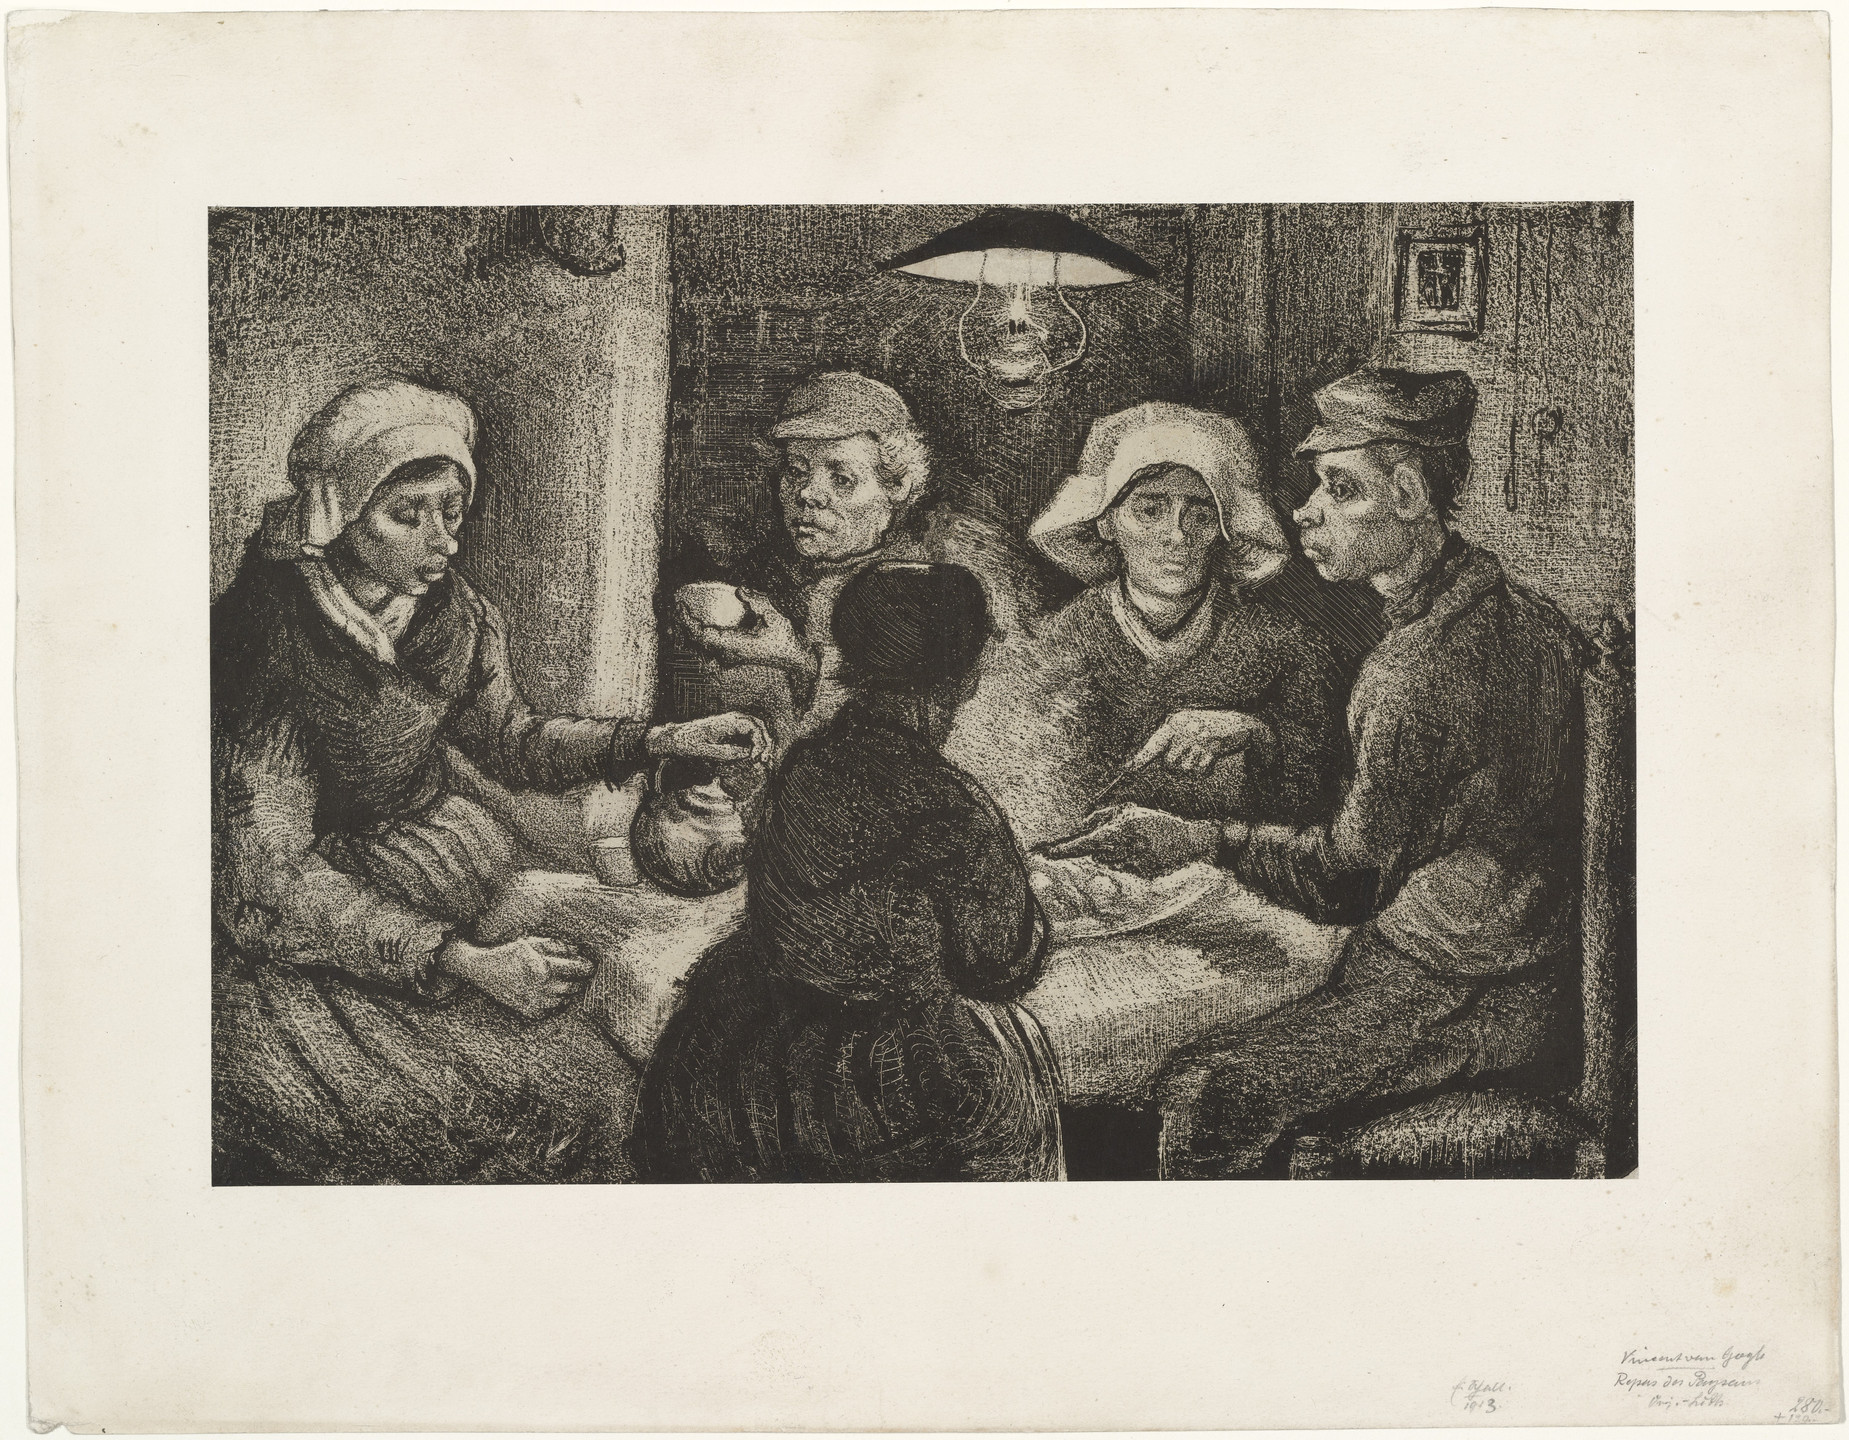 Vincent van Gogh. The Potato Eaters. (April, 1885)